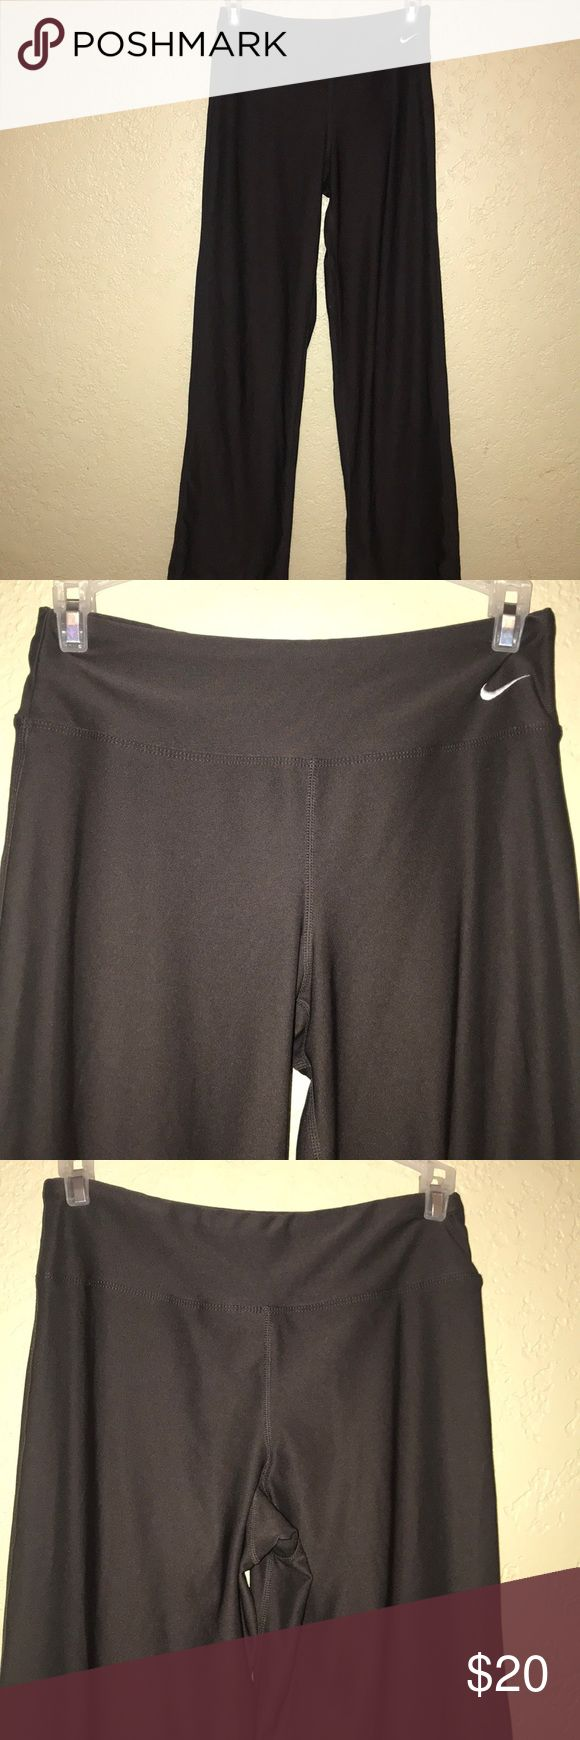 Brown Nike Yoga Pants XSmall Great Condition Brown Nike Yoga Pants XSmall Nike Pants